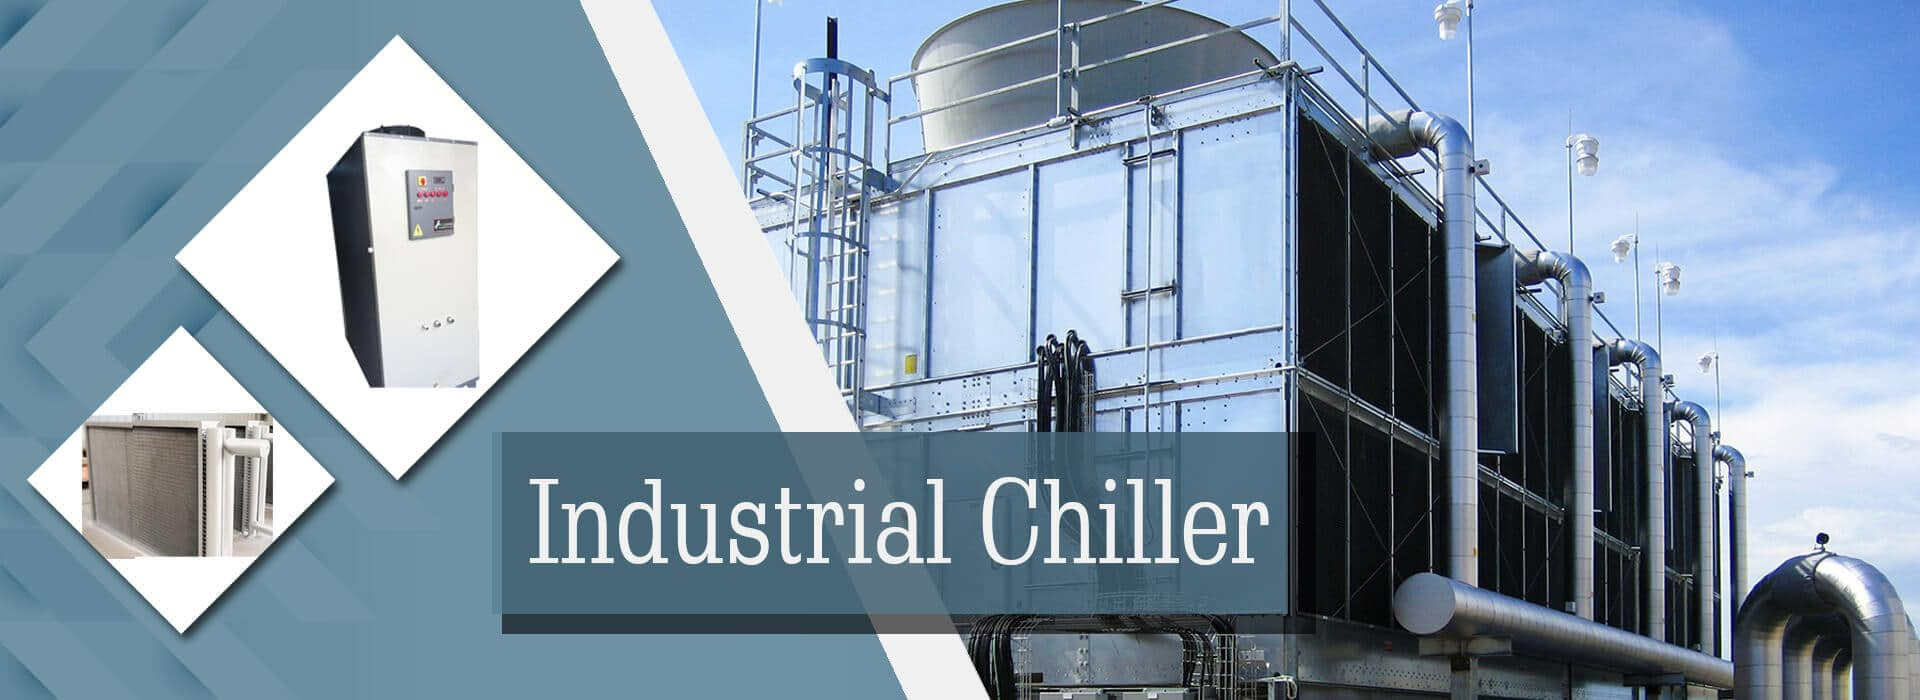 Industrial Chiller Manufacturer, Supplier and Exporter in Ahmedabad, Gujarat, India